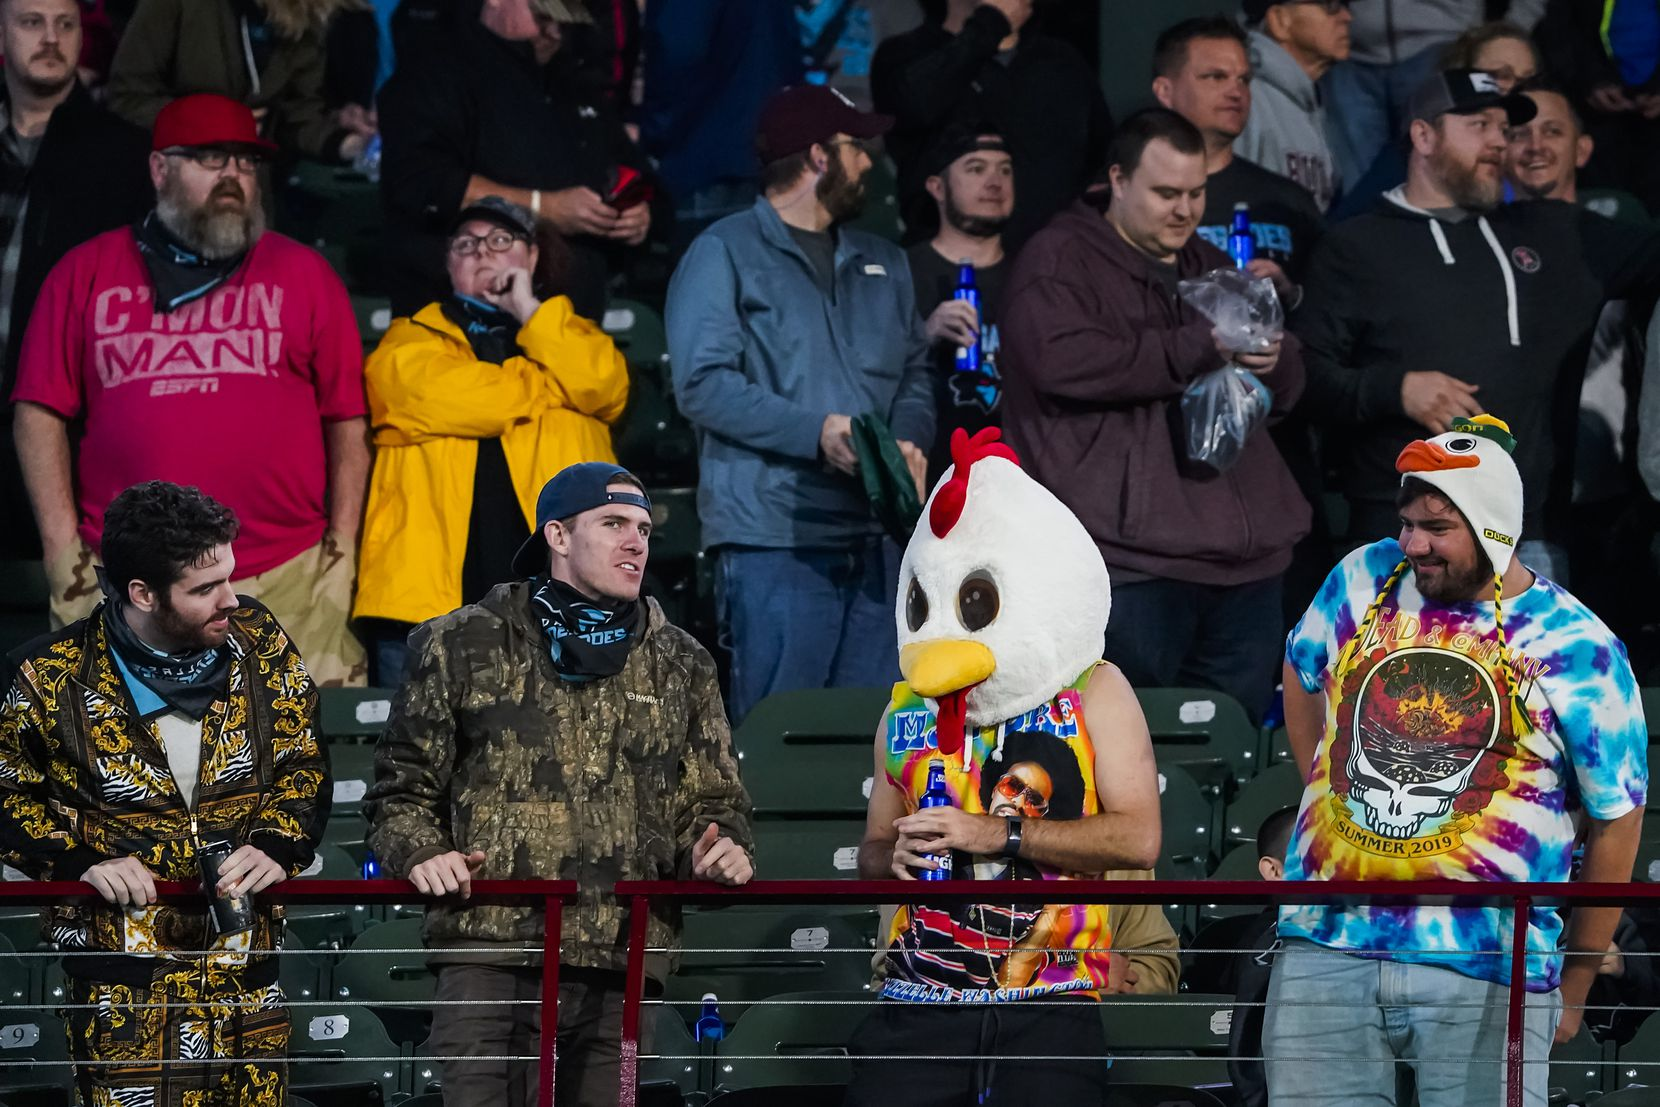 Dallas Renegades fans react after the St. Louis Battlehawks intercepted a pass in the final minute of an XFL football game at Globe Life Park on Sunday, Feb. 9, 2020, in Arlington.